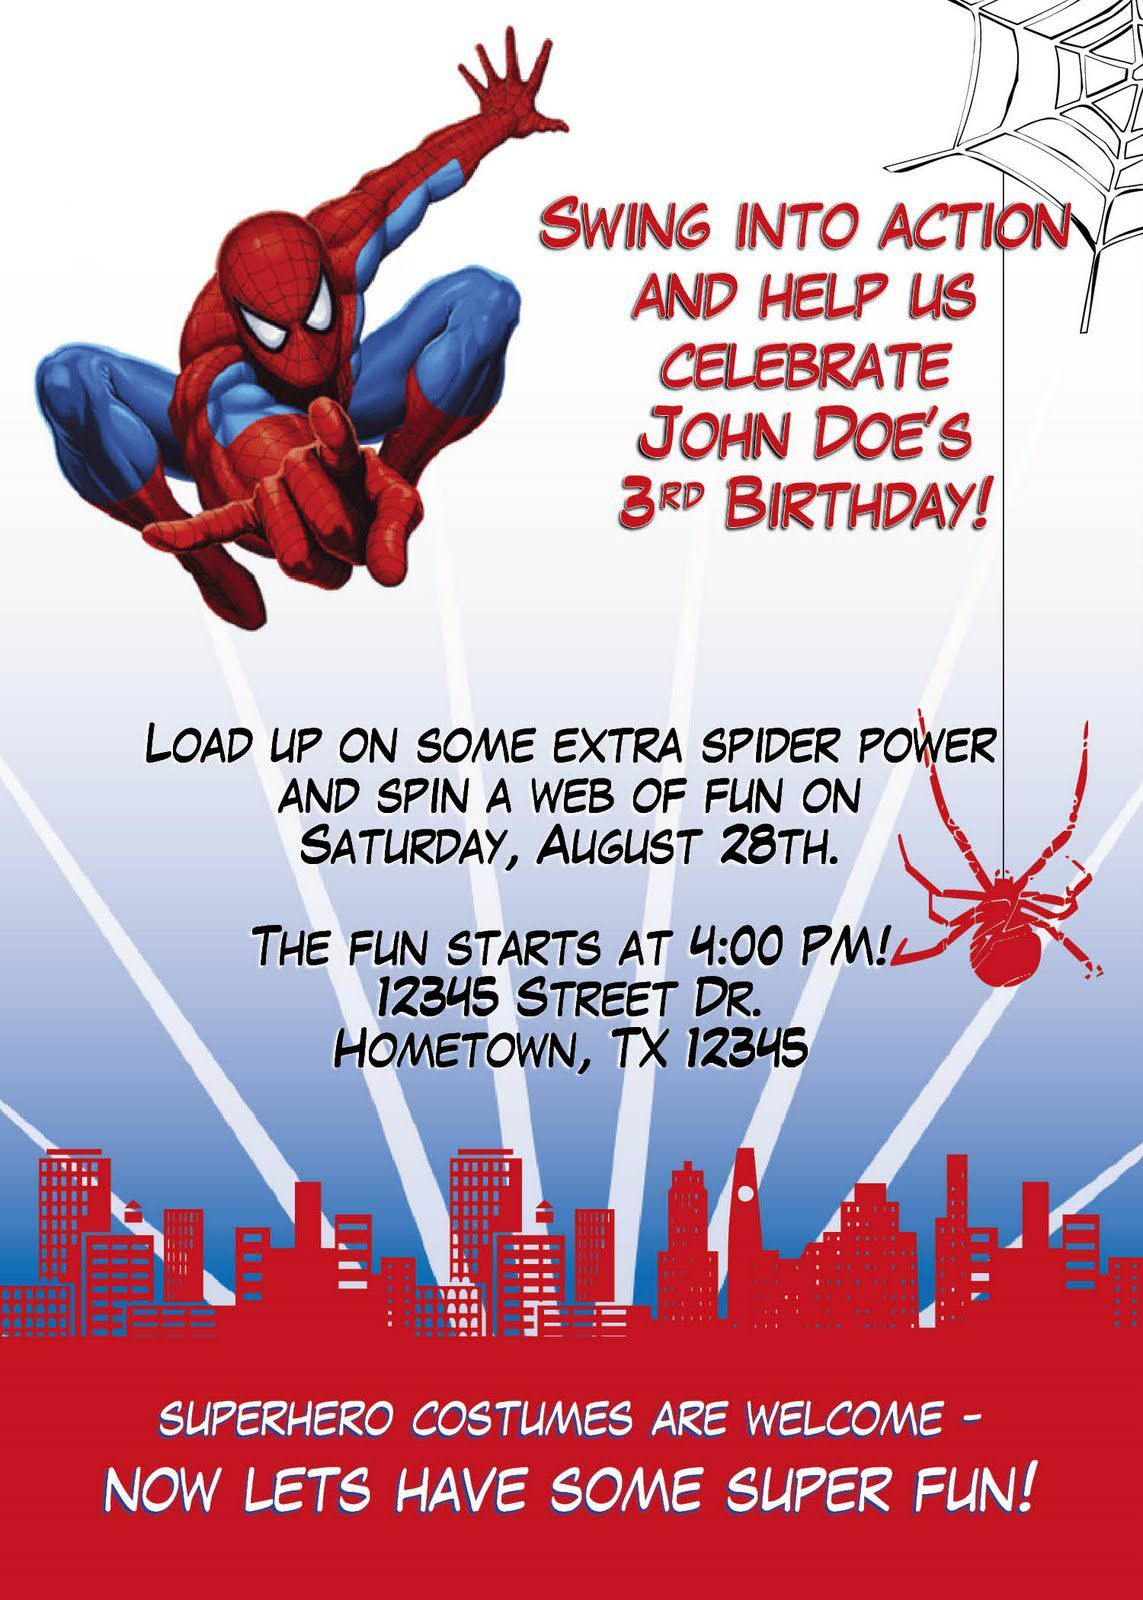 Spiderman birthday invitations nz jayden pinterest spiderman spiderman birthday invitations nz stopboris Choice Image